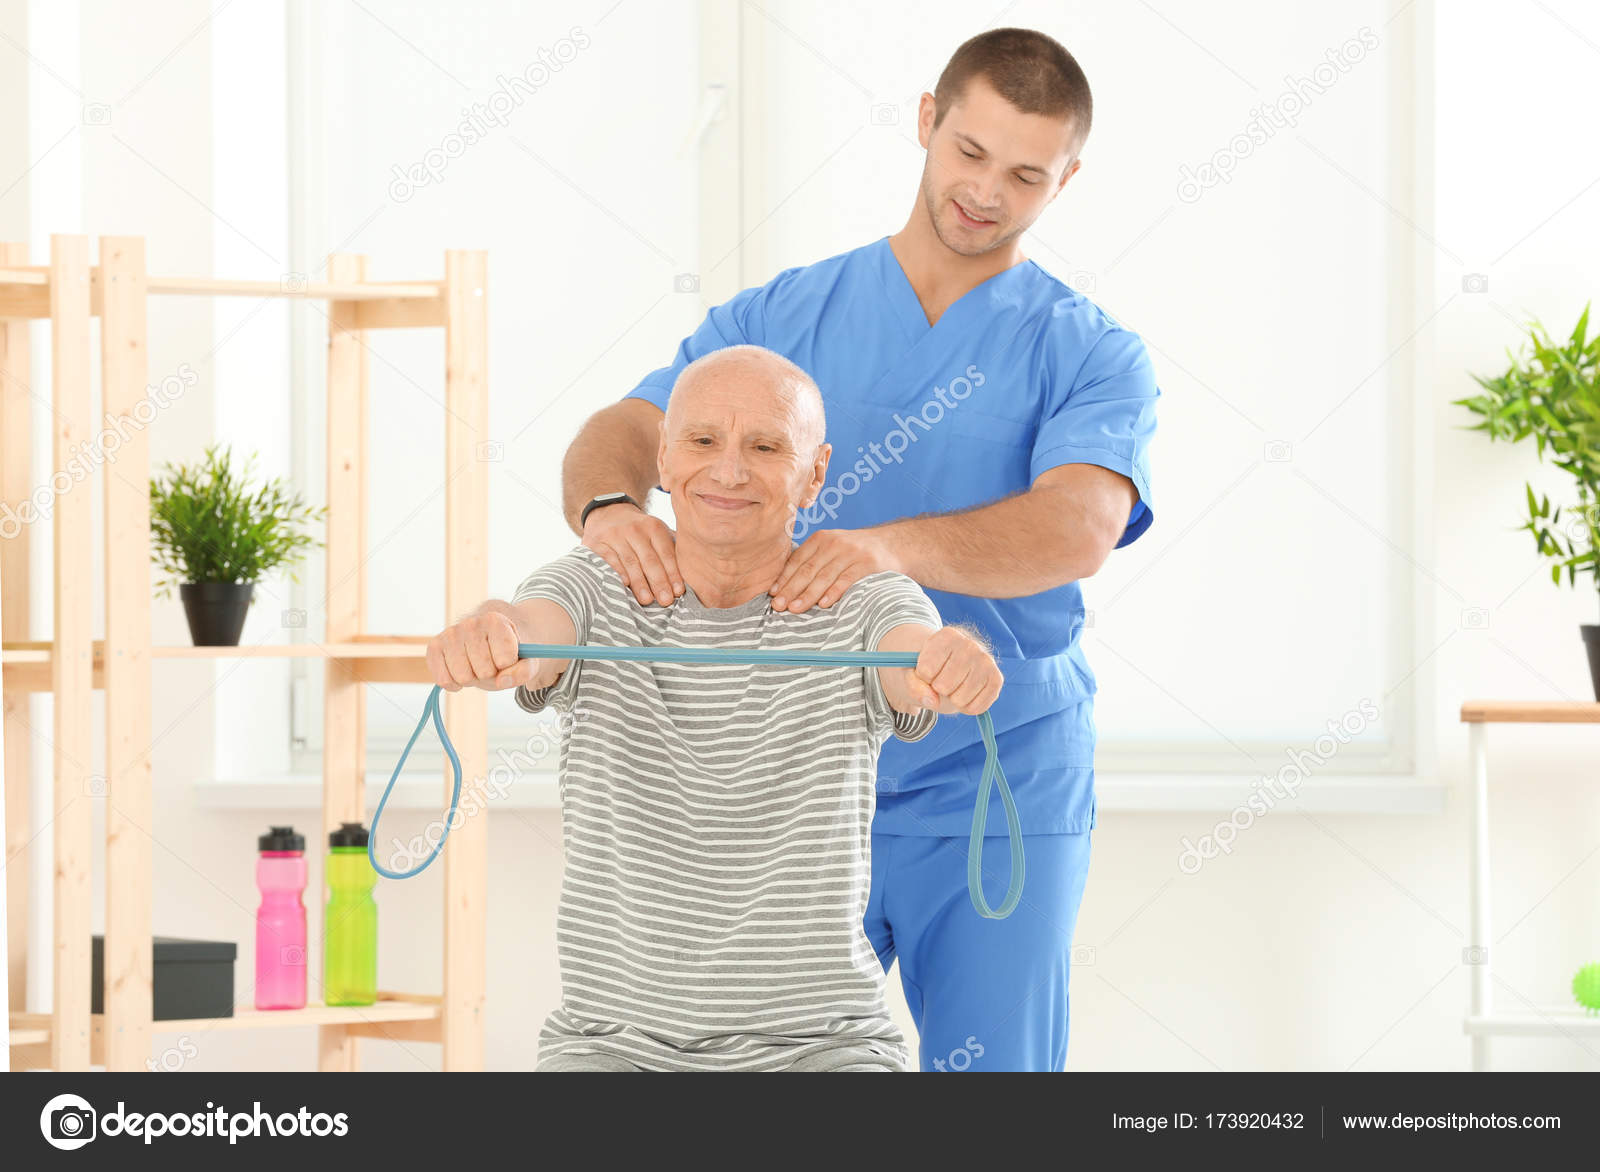 Supervision of an elderly person 2